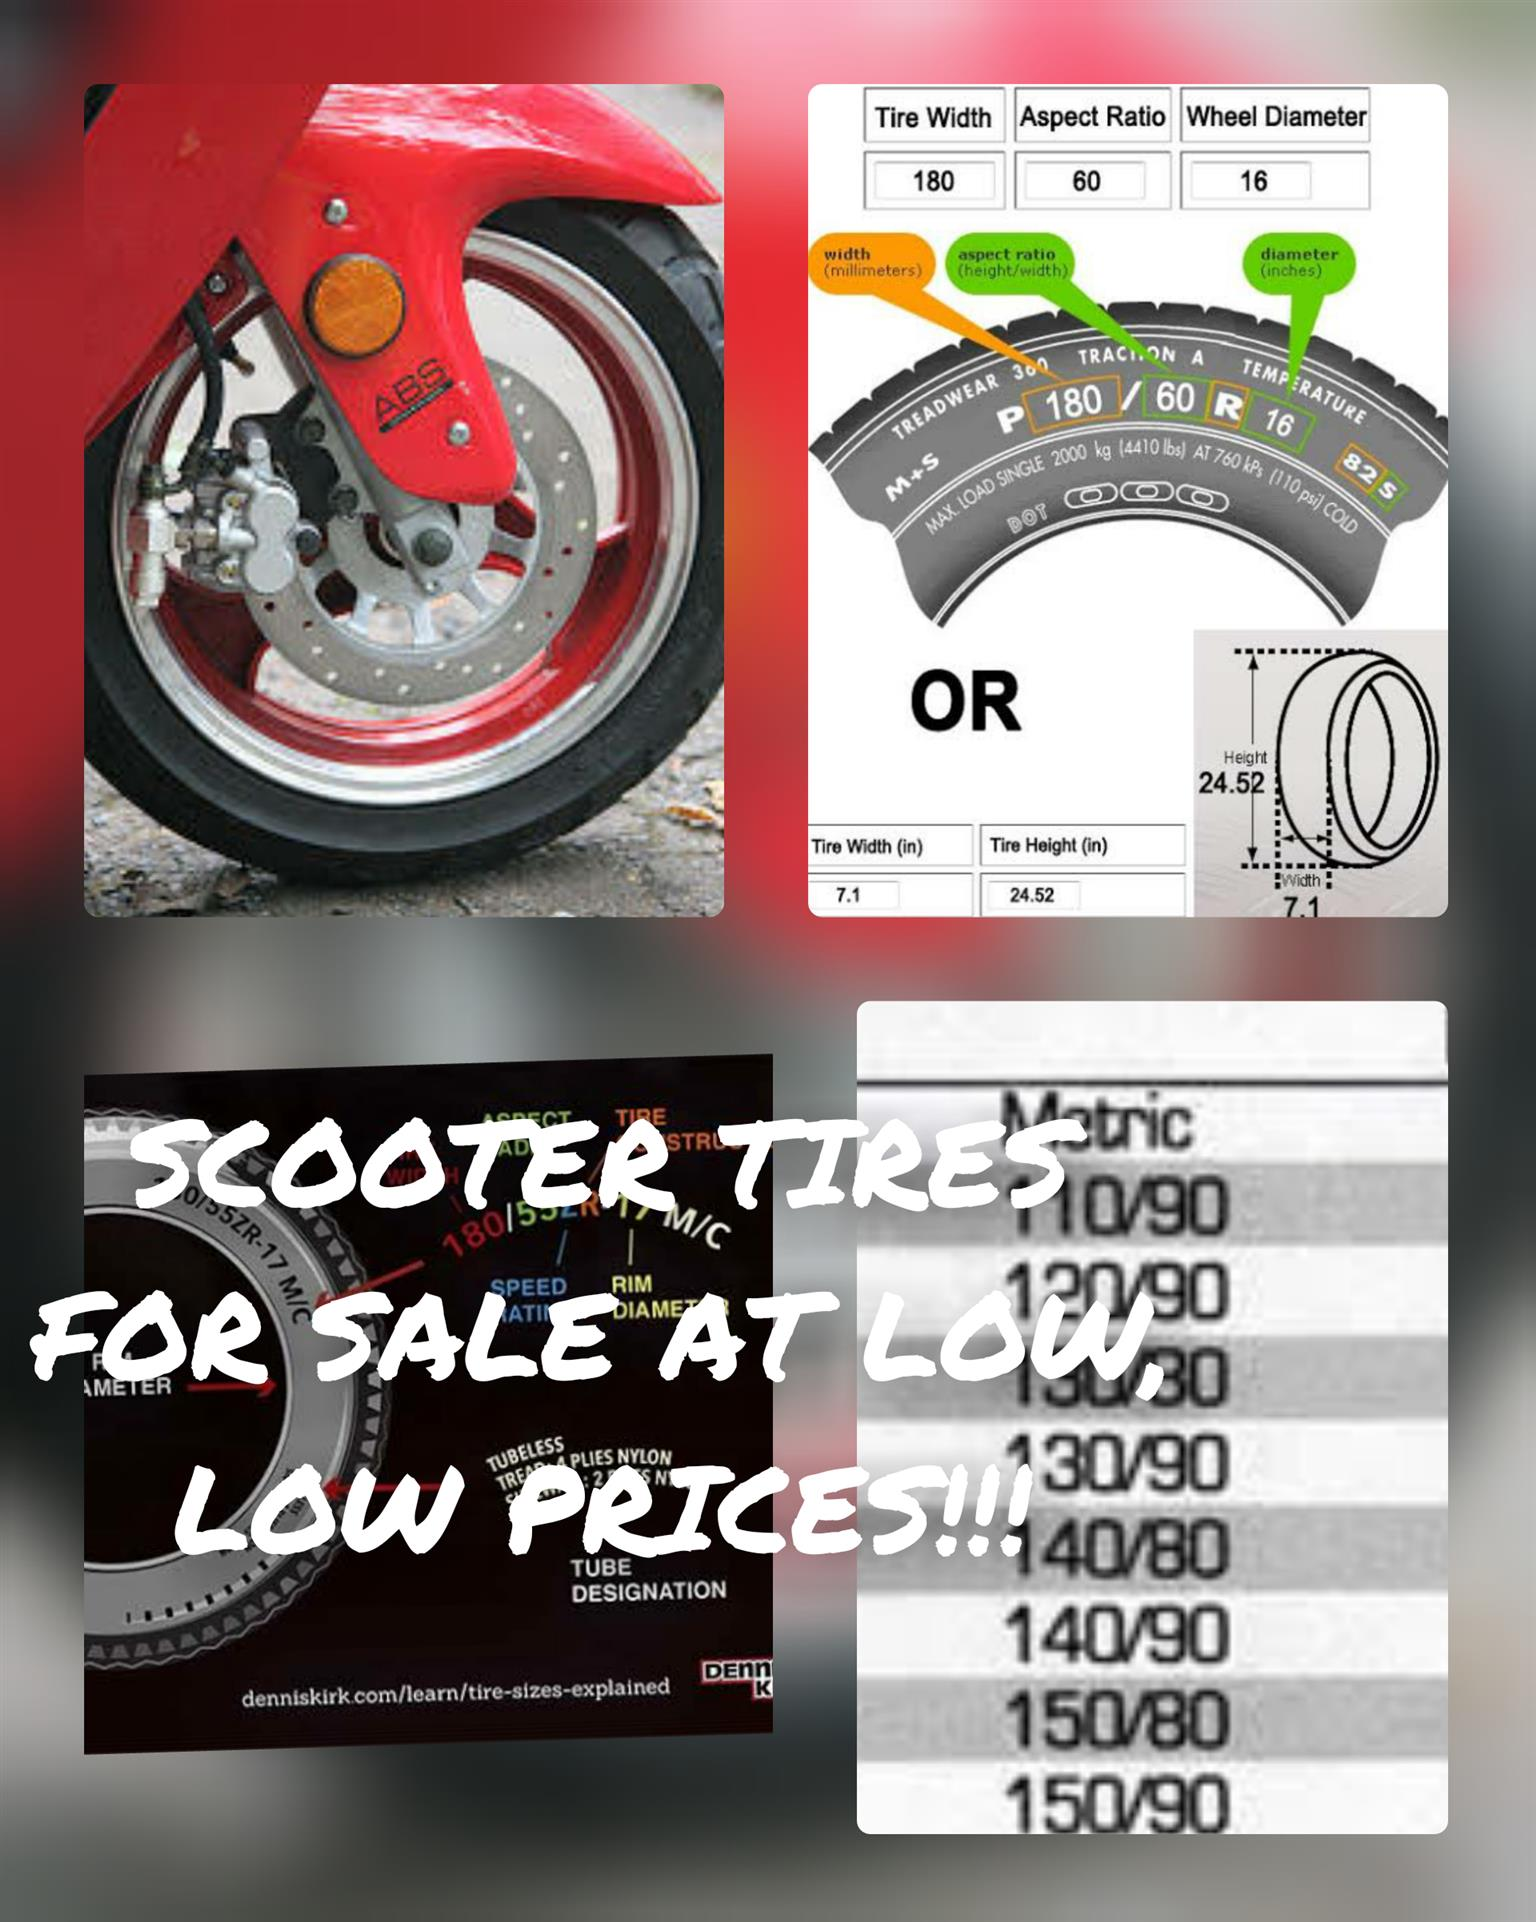 Scooter Tires ALL SIZES at unbeatable prices